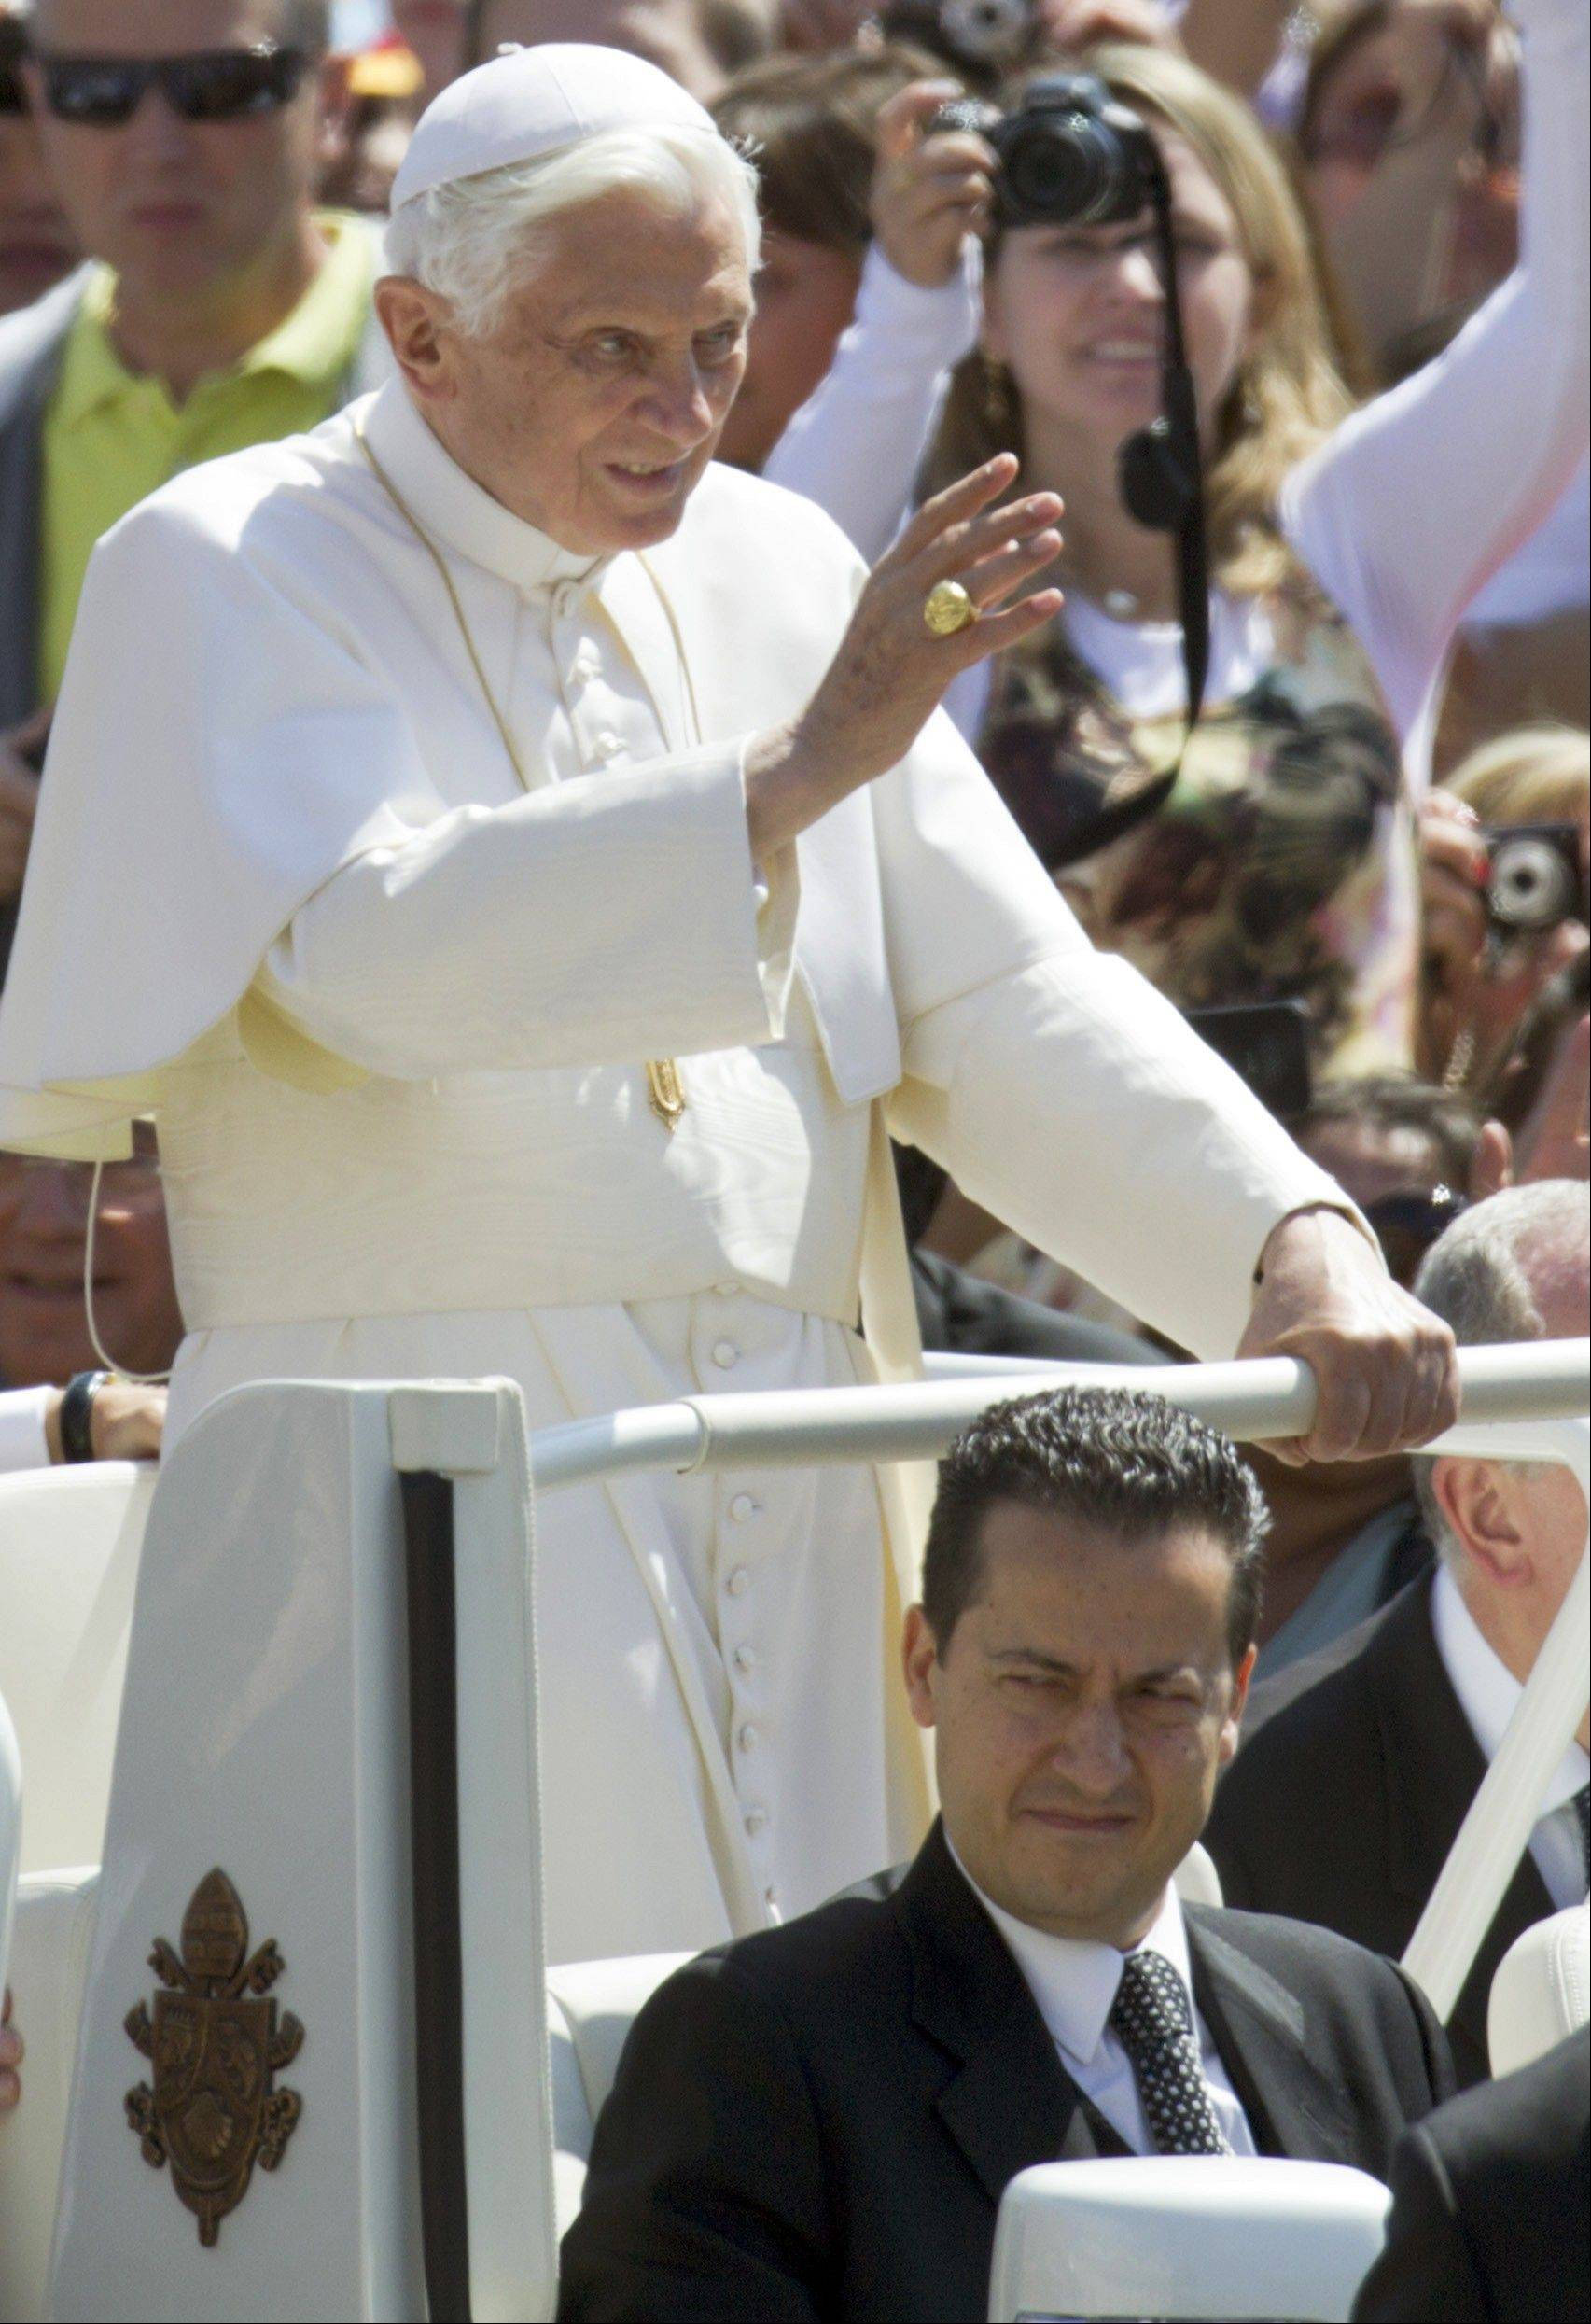 In this file photo, Pope Benedict XVI, flanked by his butler Paolo Gabiele, delivers his blessing. Pope Benedict XVI�s trusted butler, who dressed the pontiff each morning, attended his daily Mass and helped serve him his meals, stands accused of stealing the pope�s private correspondence and giving it to a journalist who wrote a blockbuster book about the secrets of one of the most secretive institutions in the world. Paolo Gabriele, a 46-year-old father of three, goes on trial Saturday Sept. 29, 2012 in the most sensational crime committed on Vatican territory since the 1998 double murder of the Swiss Guard commander and his wife. That case never came to trial because the suspect killed himself.